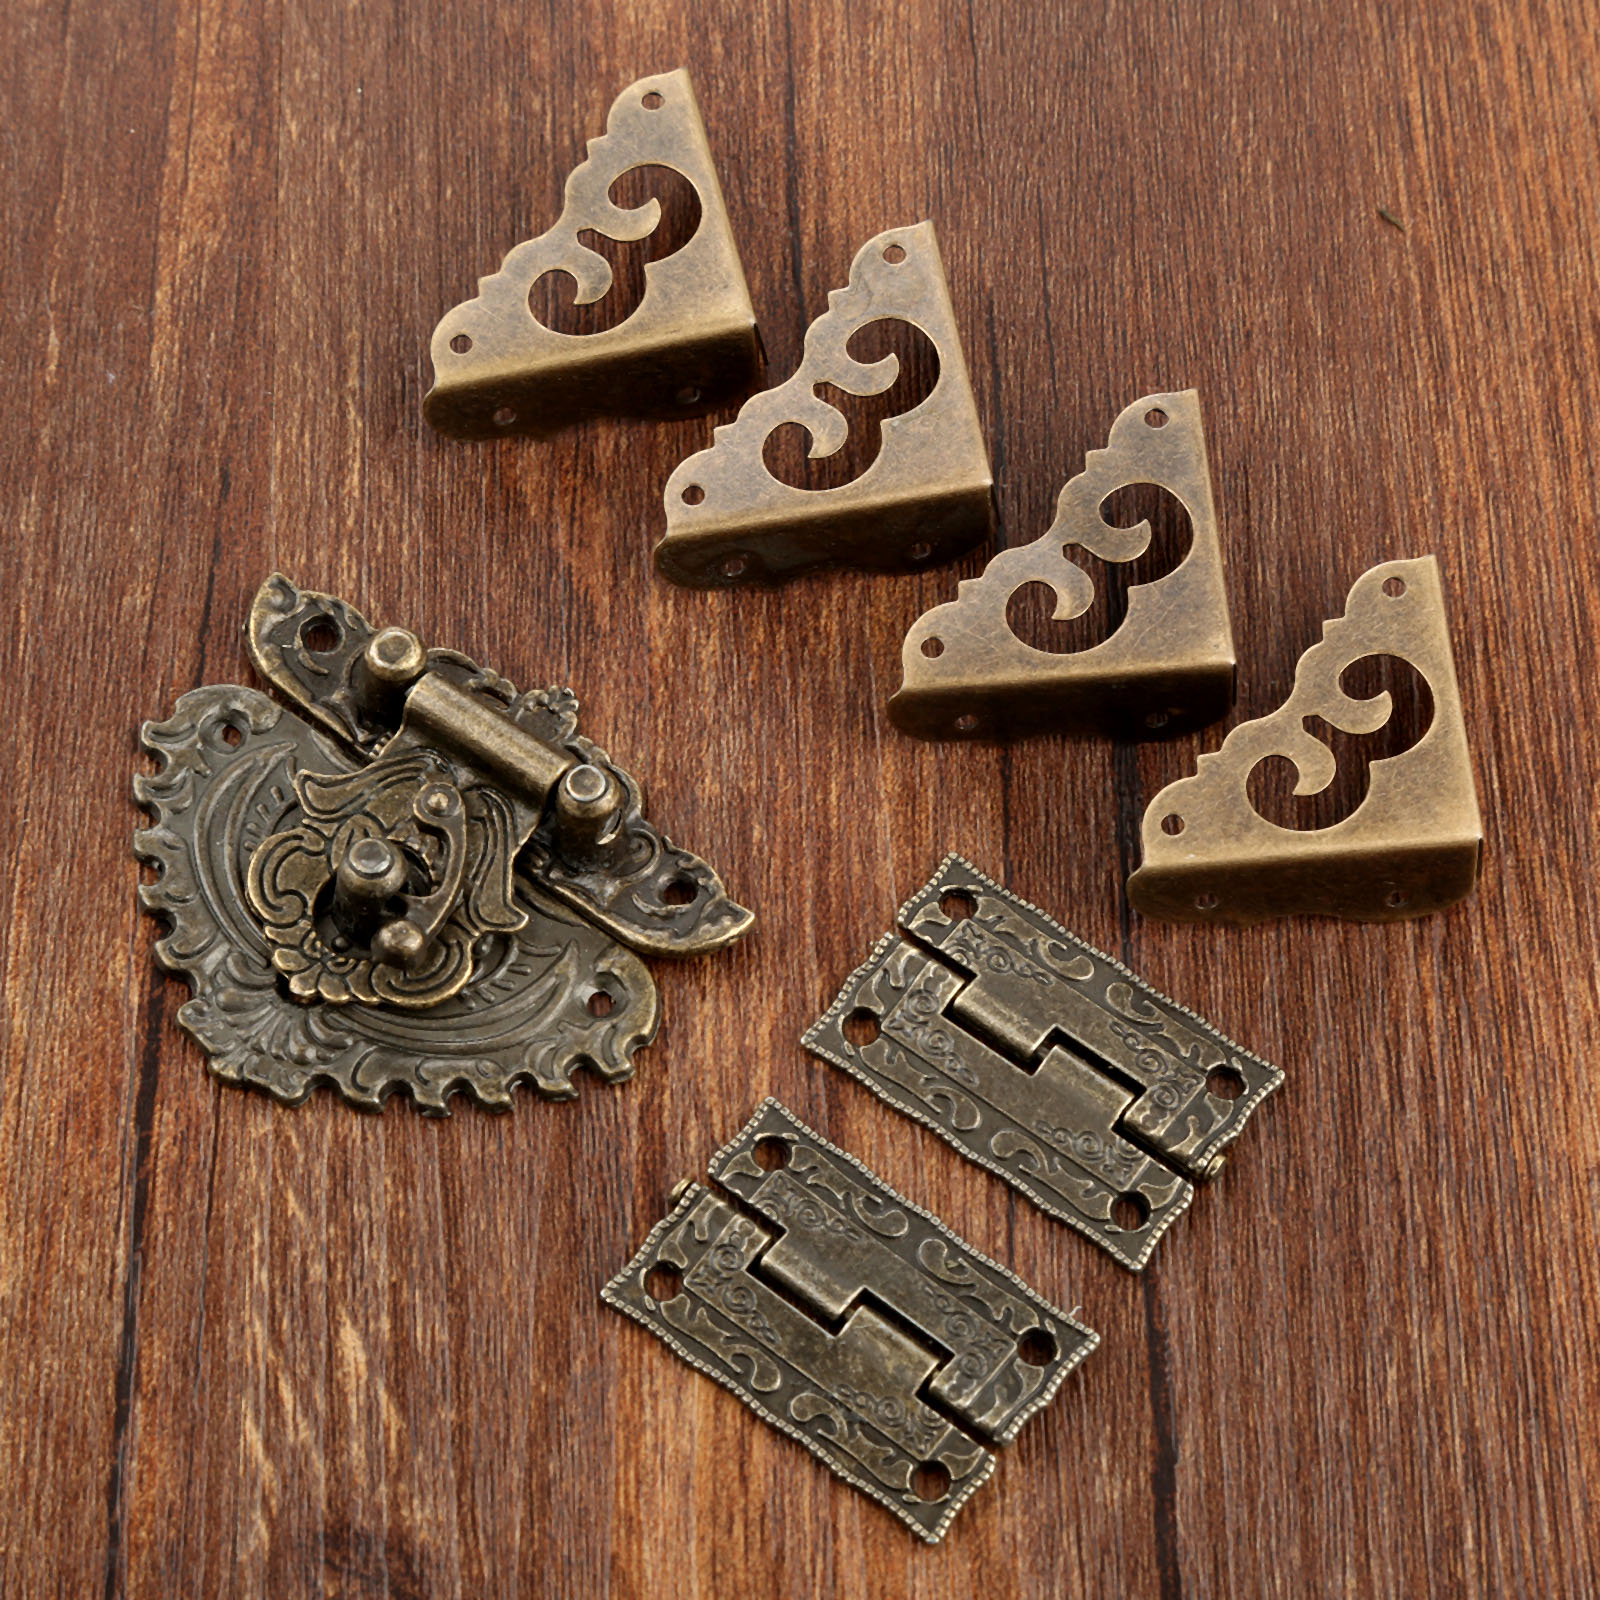 Antique Box Latch Hasp Toggle Buckle Cabinet Hinges 4Pcs Corner Decorative Protectors for Jewelry Wooden Box Hardware